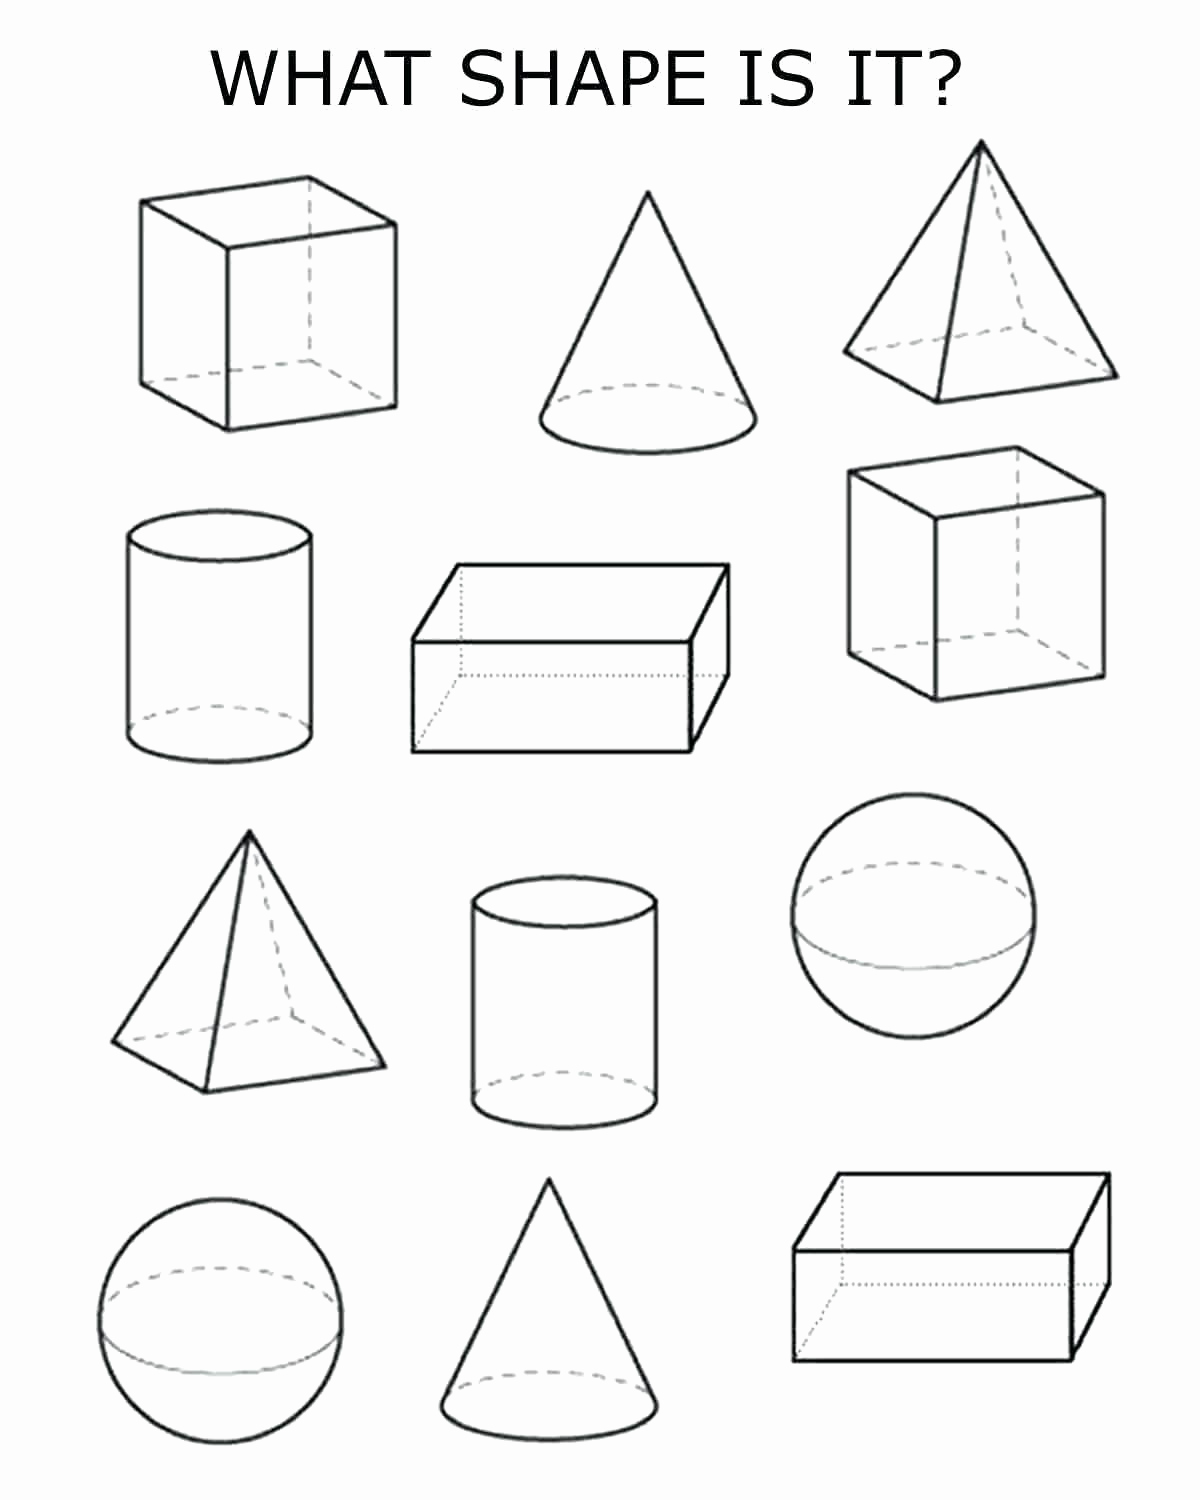 3 Dimensional Shapes Worksheet Luxury 3 Dimensional Shapes Drawing at Getdrawings